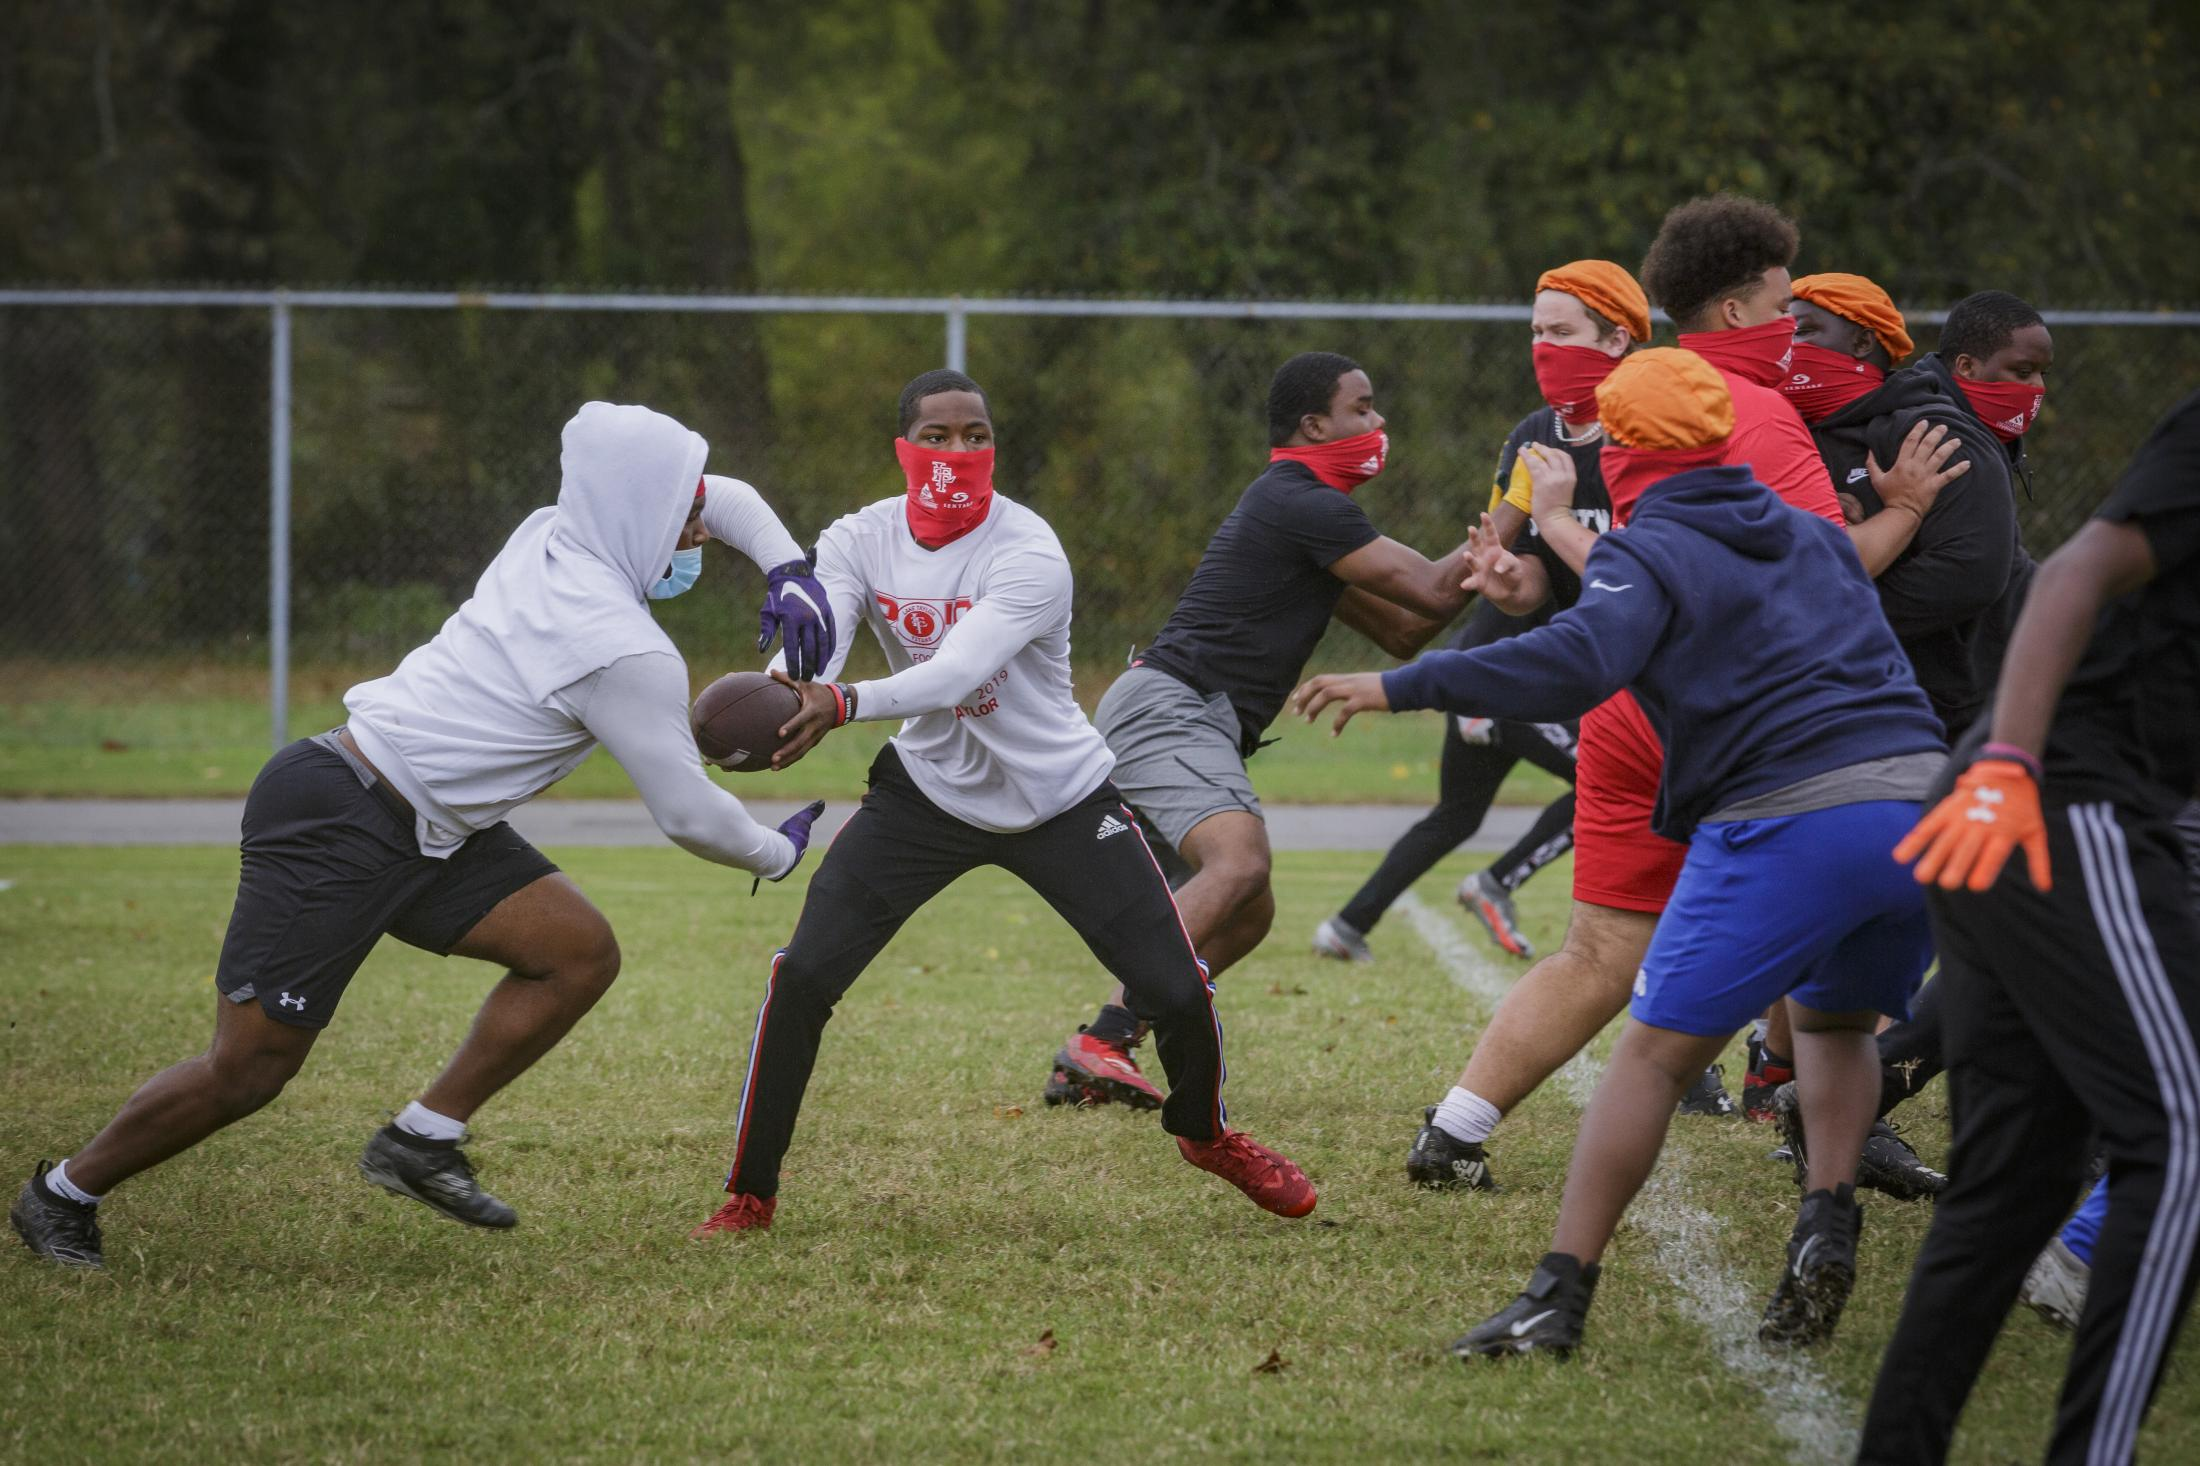 NORFOLK, VA – October 29, 2020: Jeff Foster (left) member of the Lake Taylor High School TITANS, at football practice. Due to the COVID-19 pandemic, football games were canceled at Lake Taylor High School in Norfolk, VA, but weekly practice are still going on. Carlos Bernate / The Undefeated